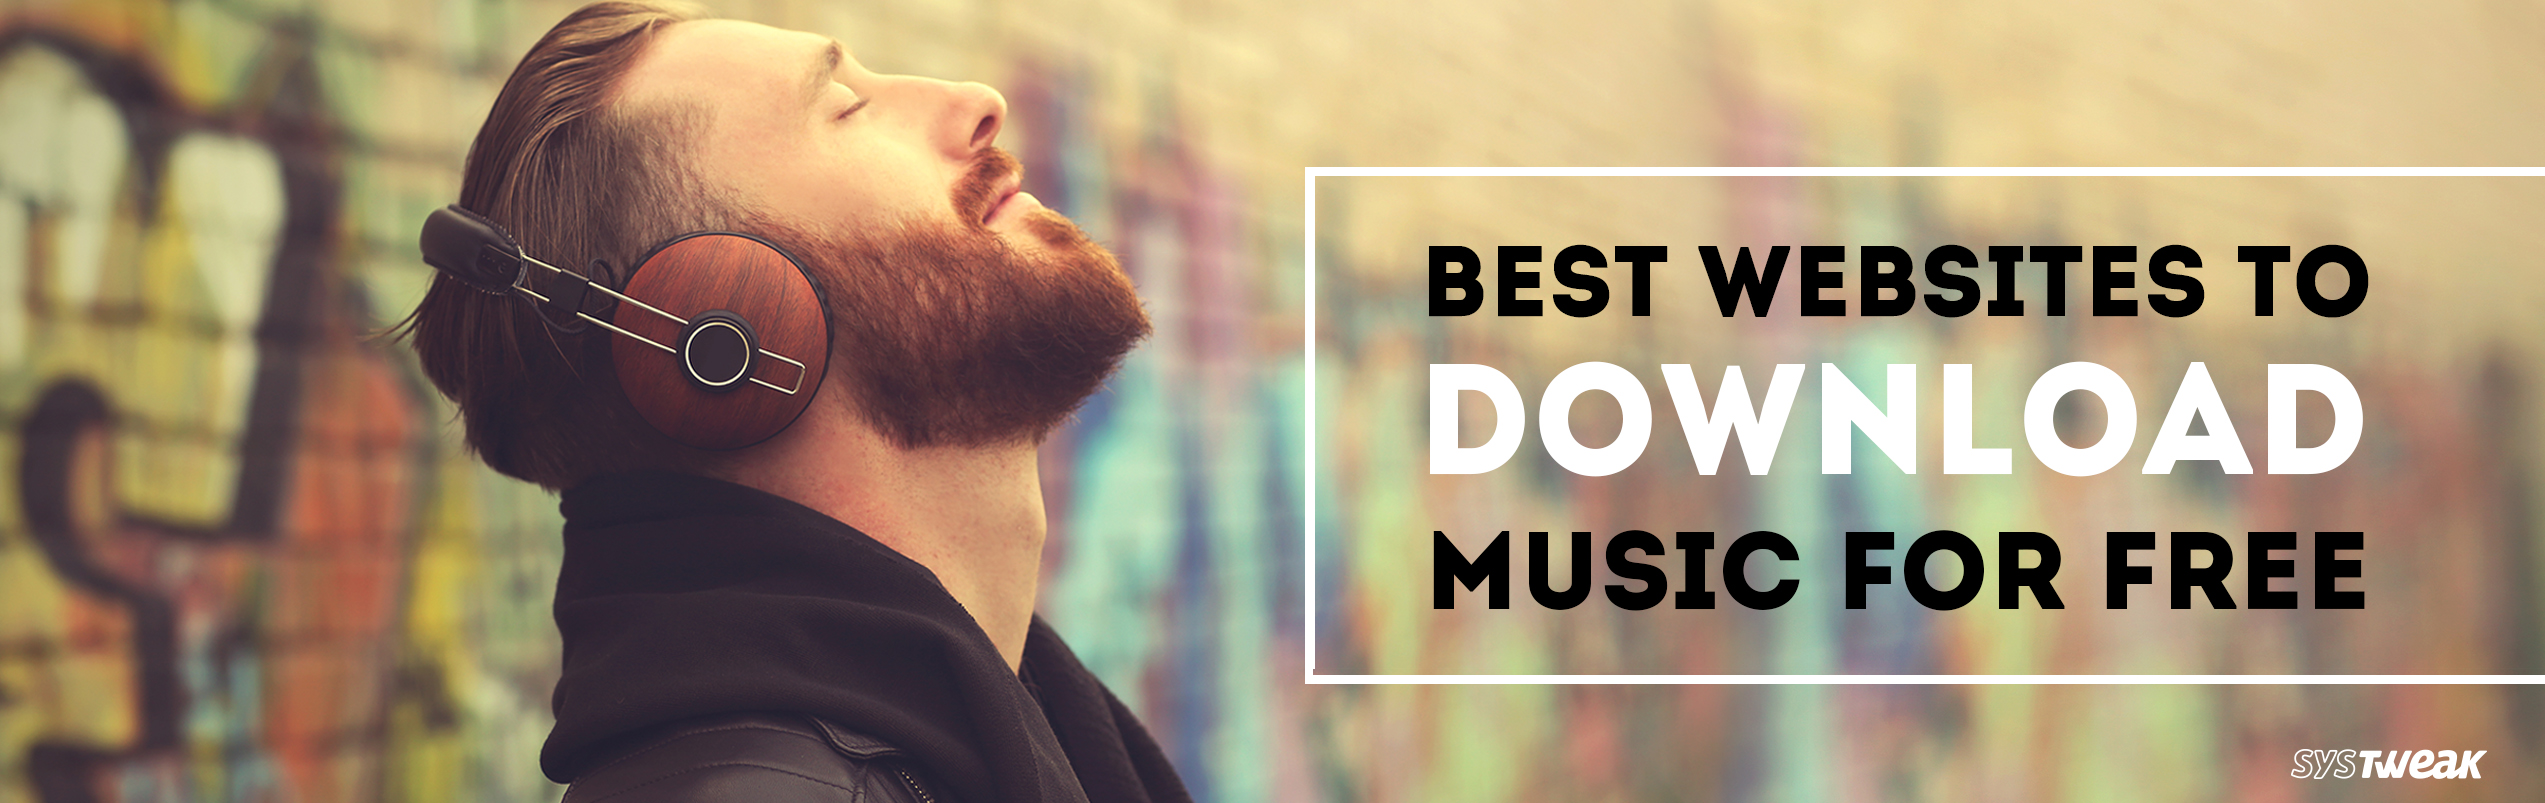 6 Best Websites To Download Music For Free 2018